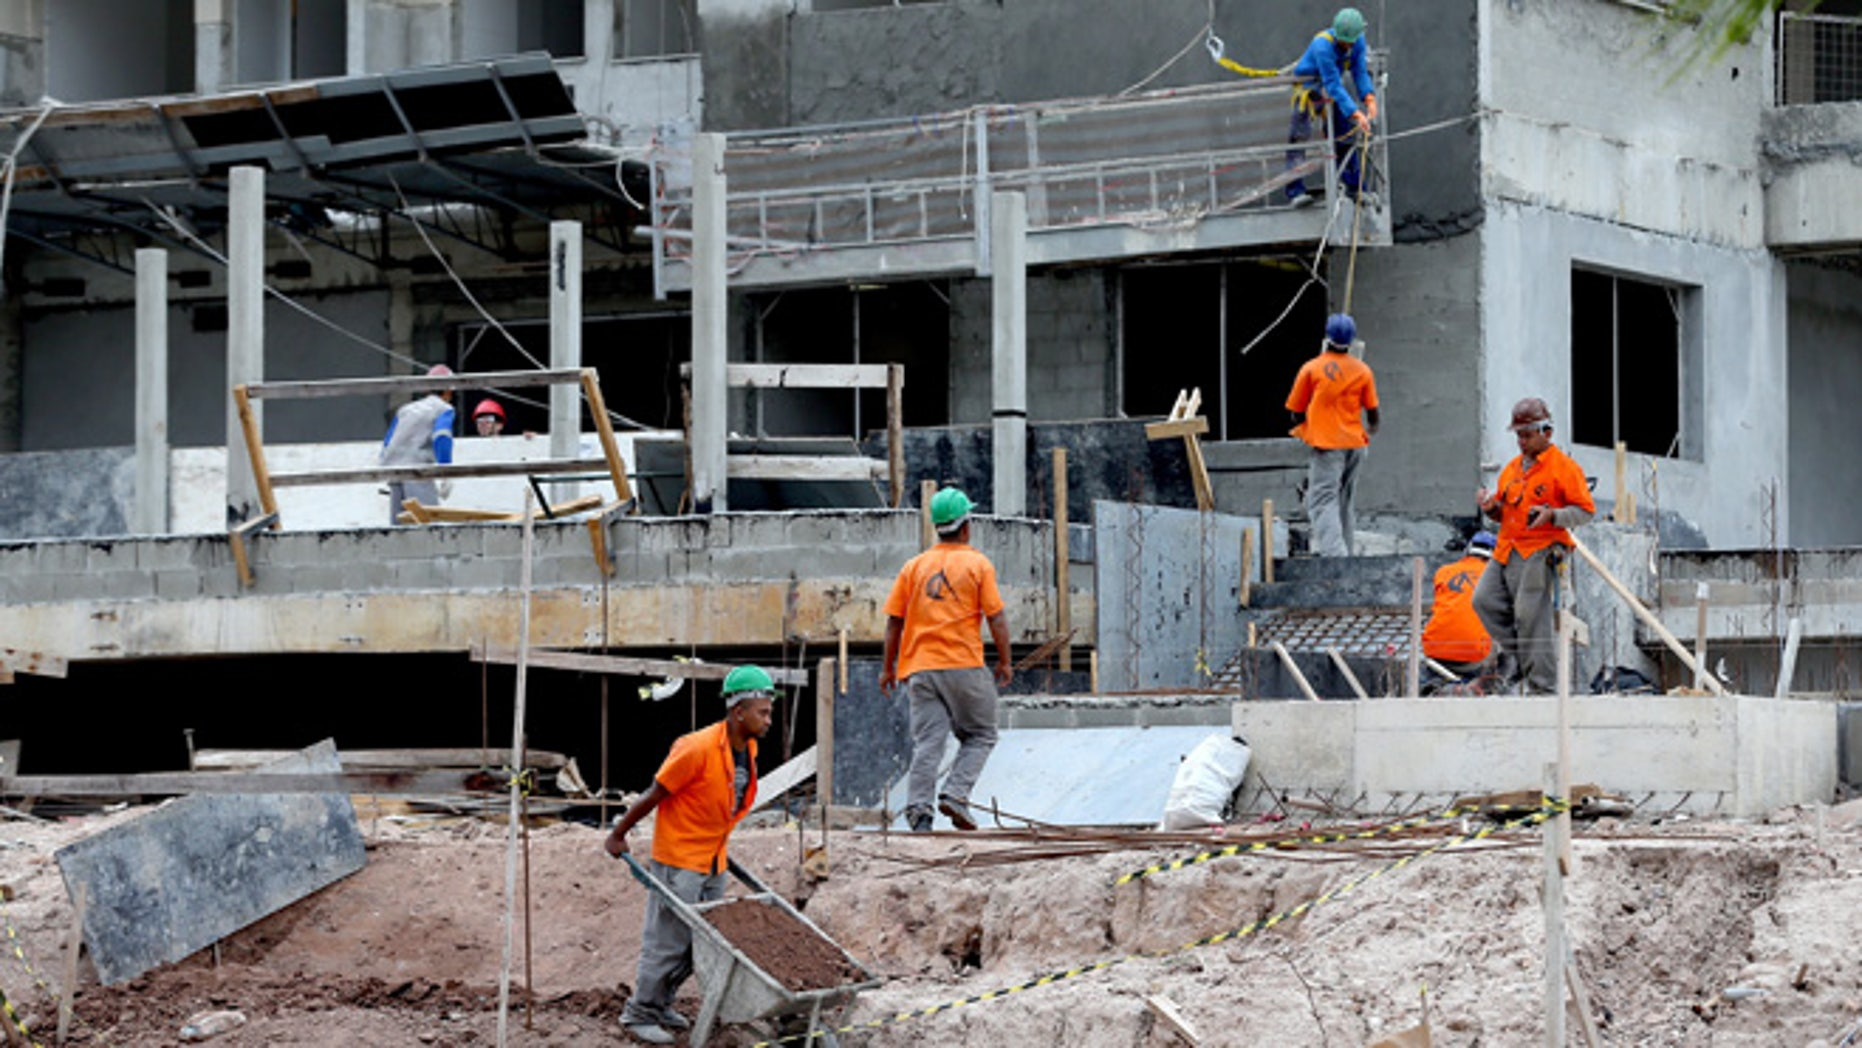 RIO DE JANEIRO, BRAZIL - JULY 21:  Construction progress takes place during a tour of the Ilha Pura housing complex, the future site of the Athletes' Village for the Rio 2016 Olympic Games, on July 21, 2015 in Rio de Janeiro, Brazil.  (Photo by Matthew Stockman/Getty Images)